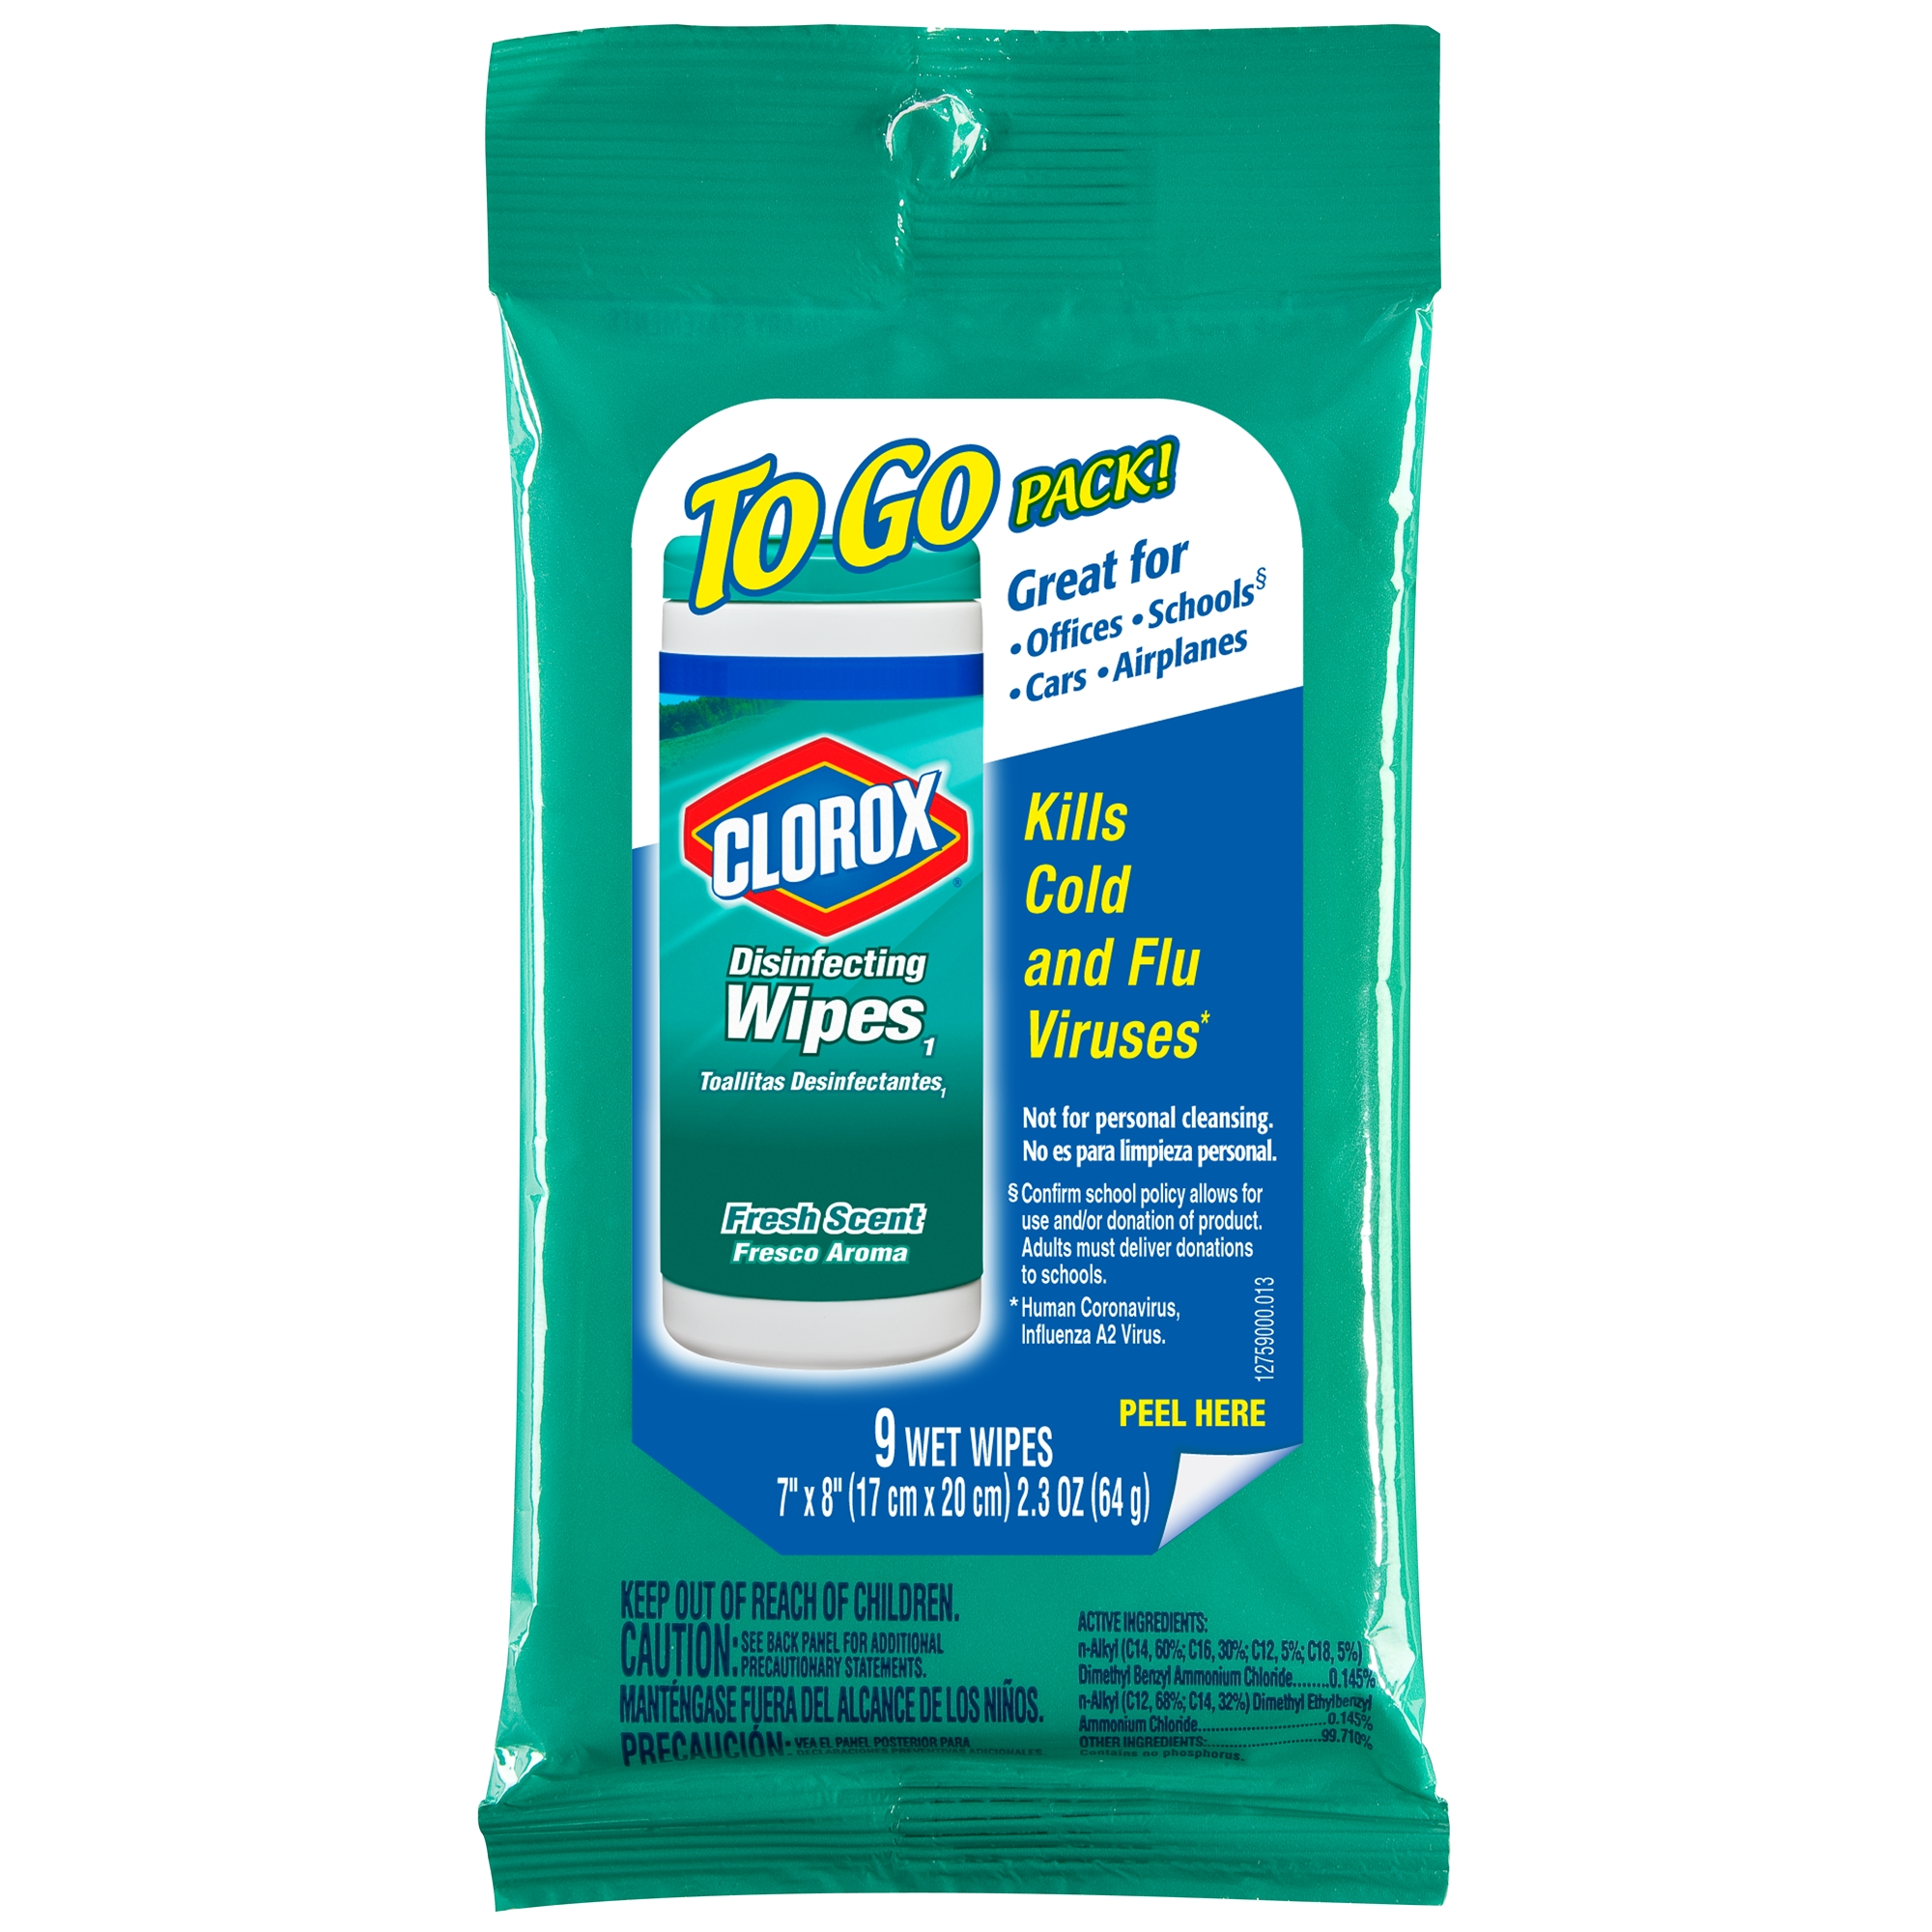 Clorox Disinfecting Wipes On The Go, Fresh Scent - 9 ct